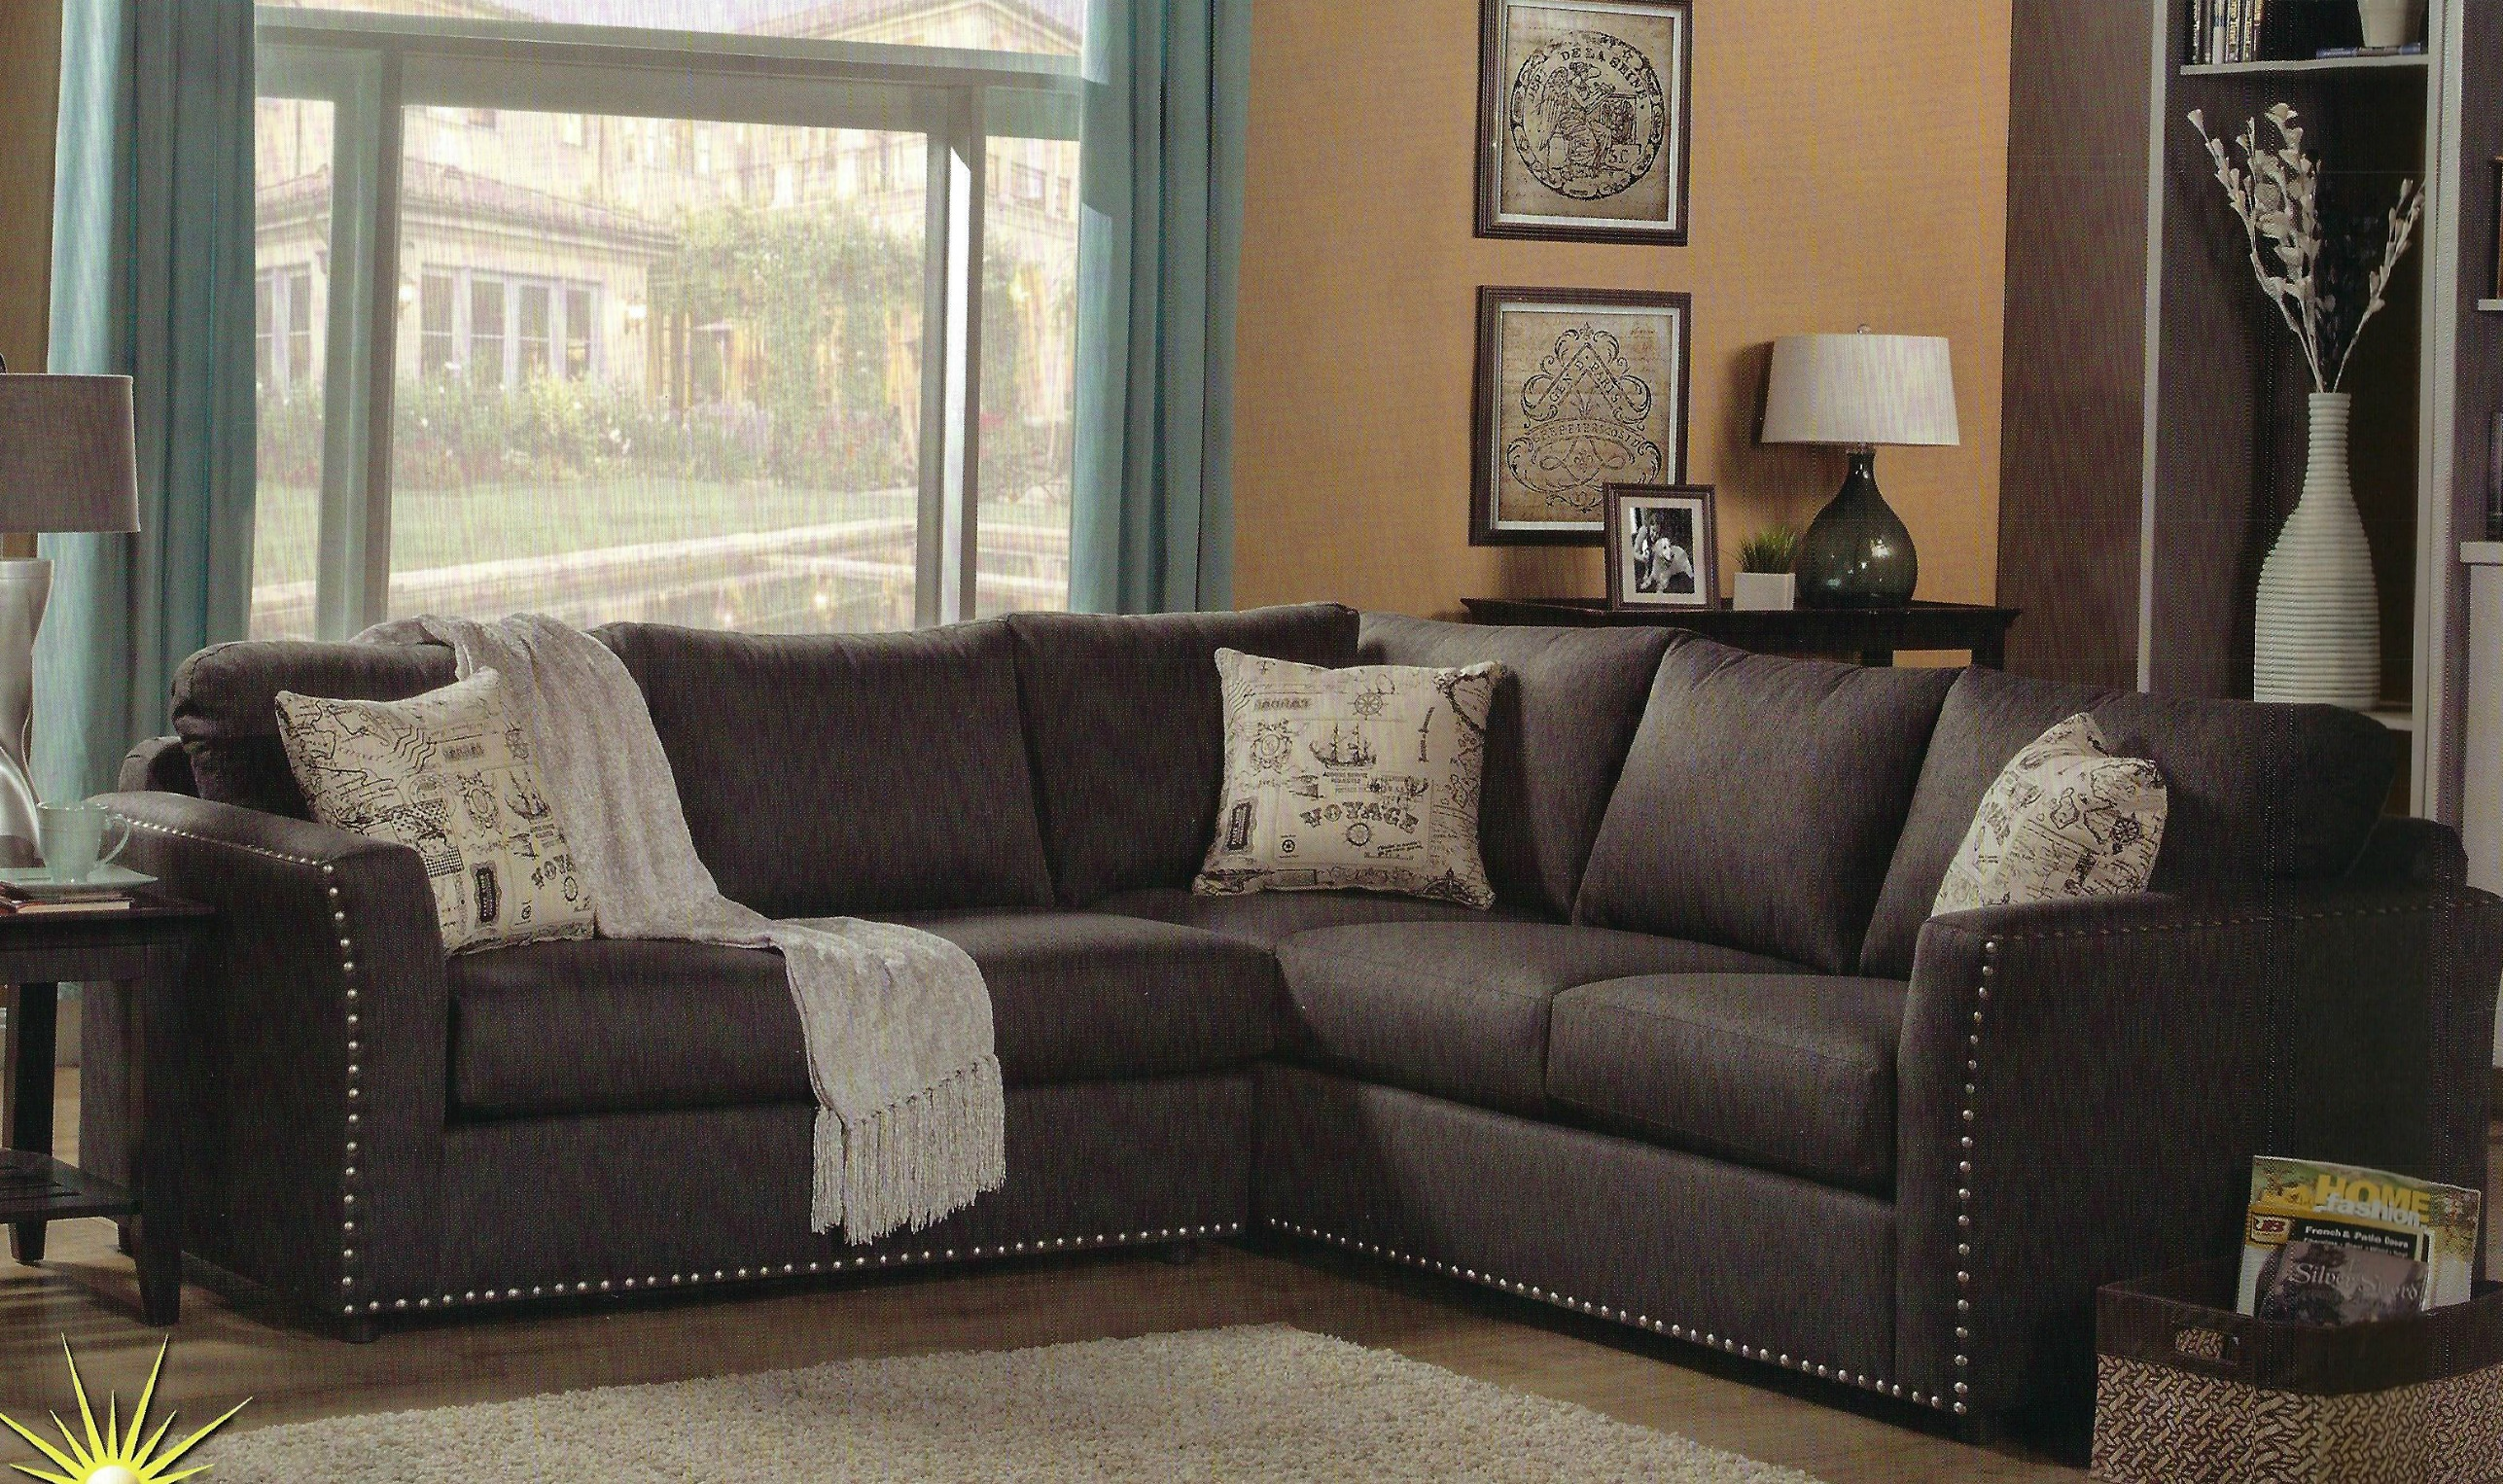 Marlow sectional